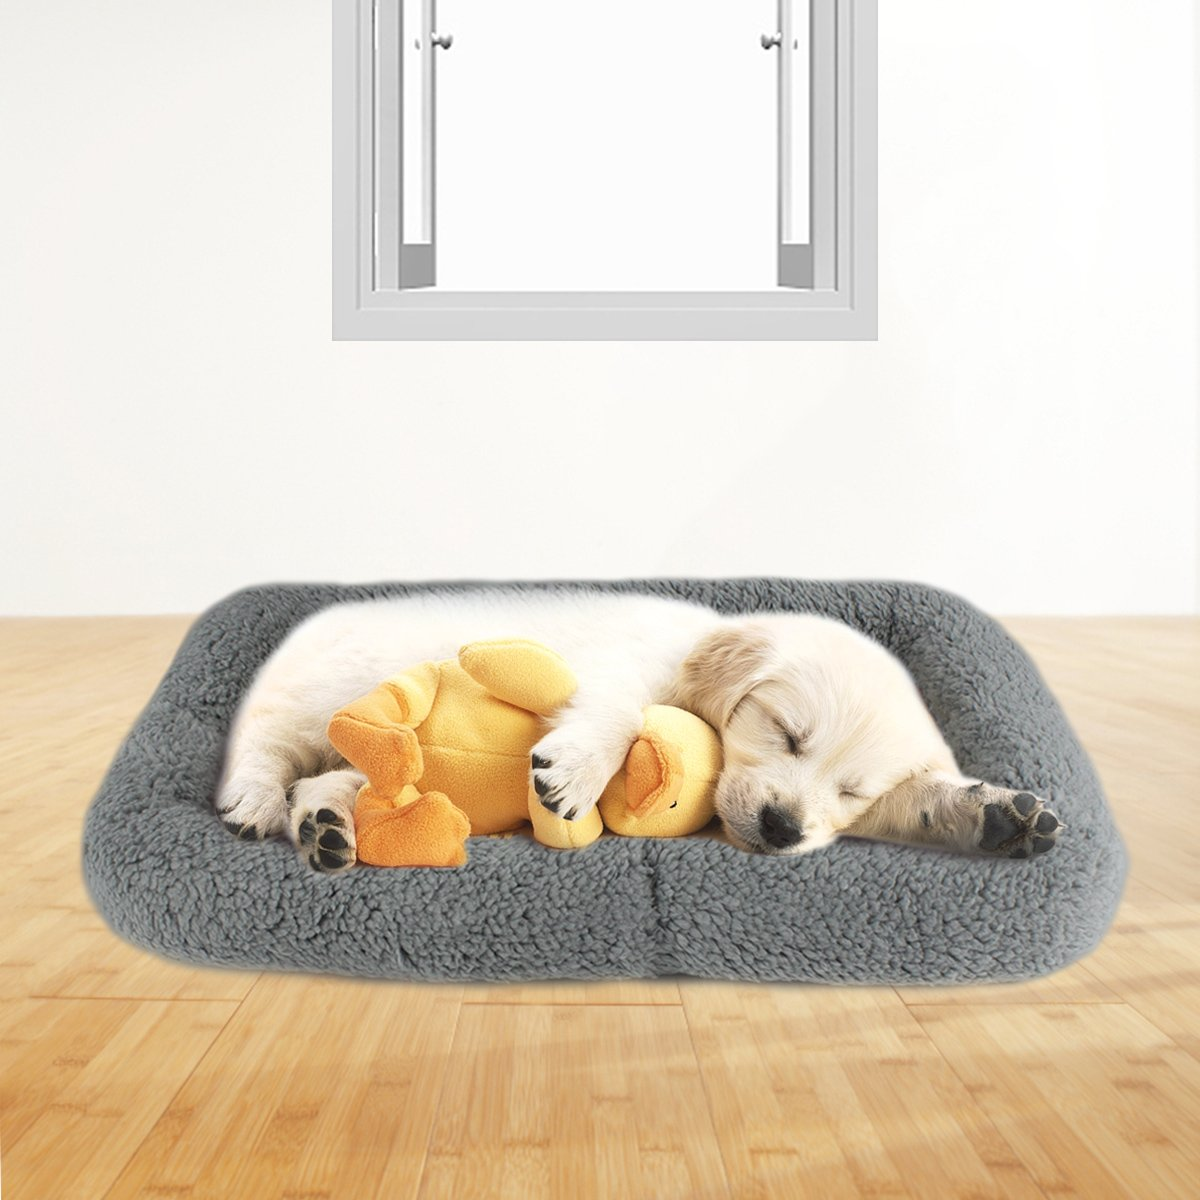 LESYPET Small Dog Crate Cotton Washable Mat Small by LESYPET (Image #7)